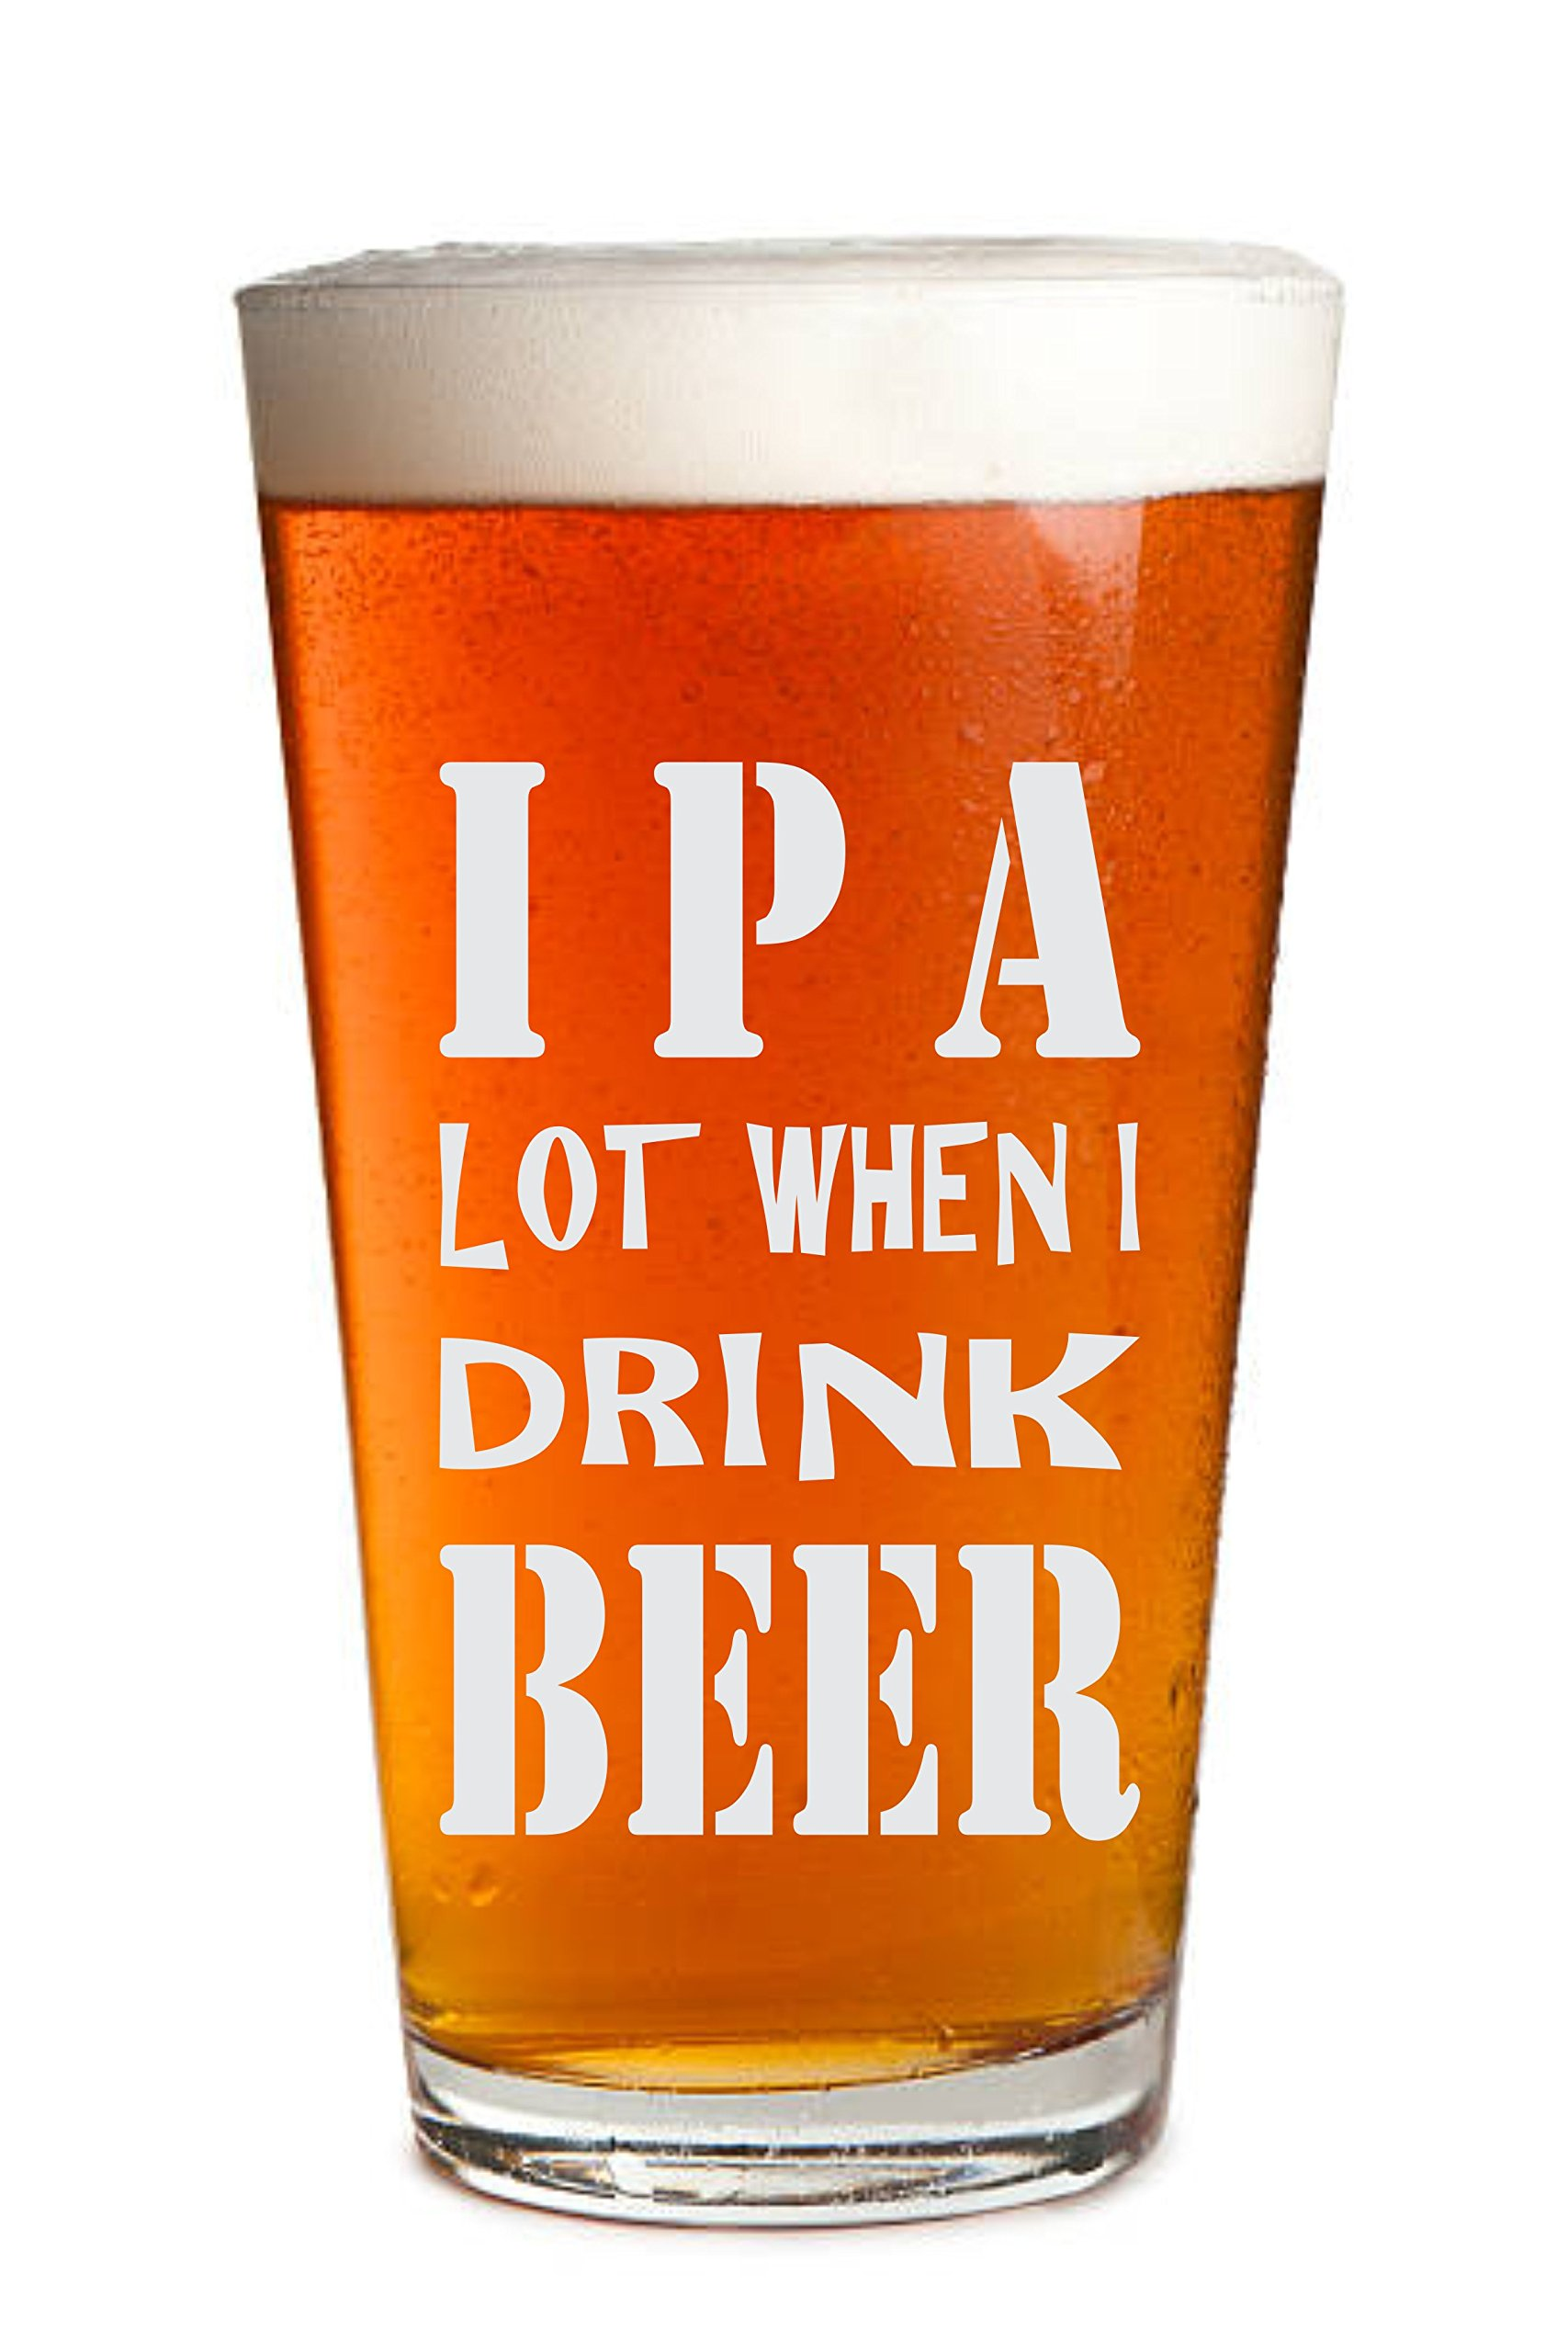 Sandblast Creations Engraved Beer Glass – IPA Lot When I Drink Beer - 16oz Clear Pint / Mixing Glass - Funny Gifts for Men and Women